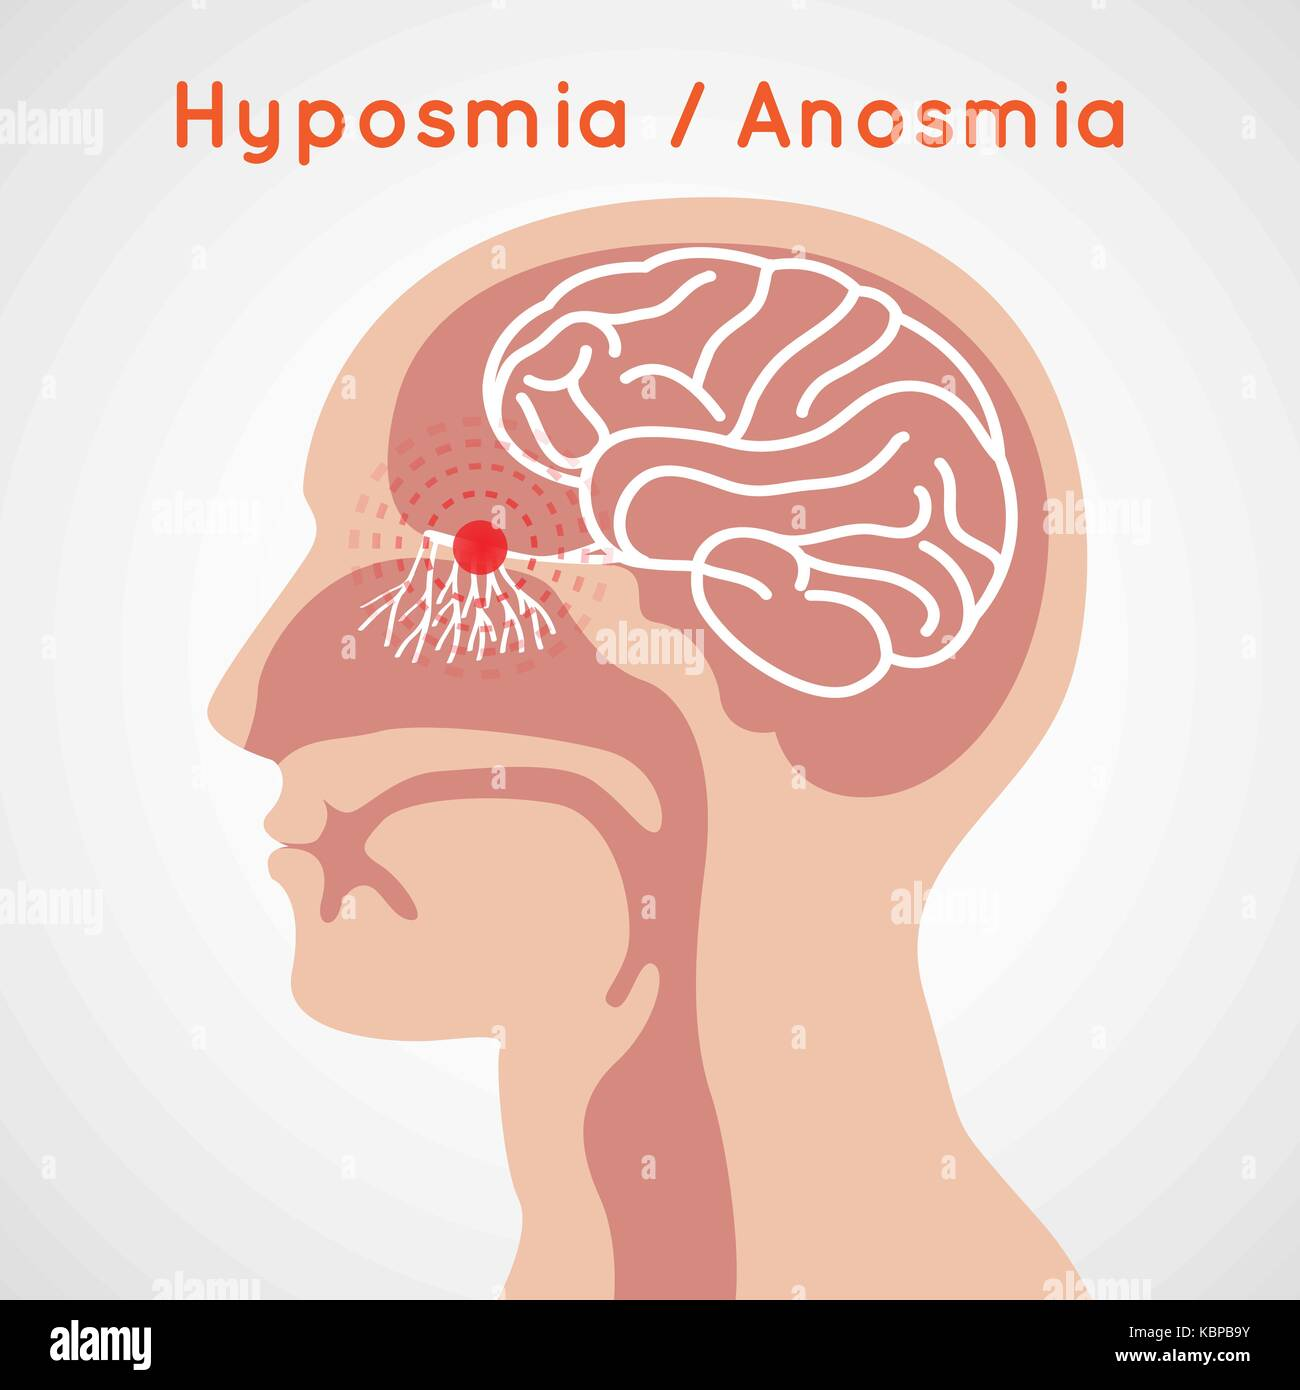 Hyposmia and Anosmia logo vector icon design illustration - Stock Image